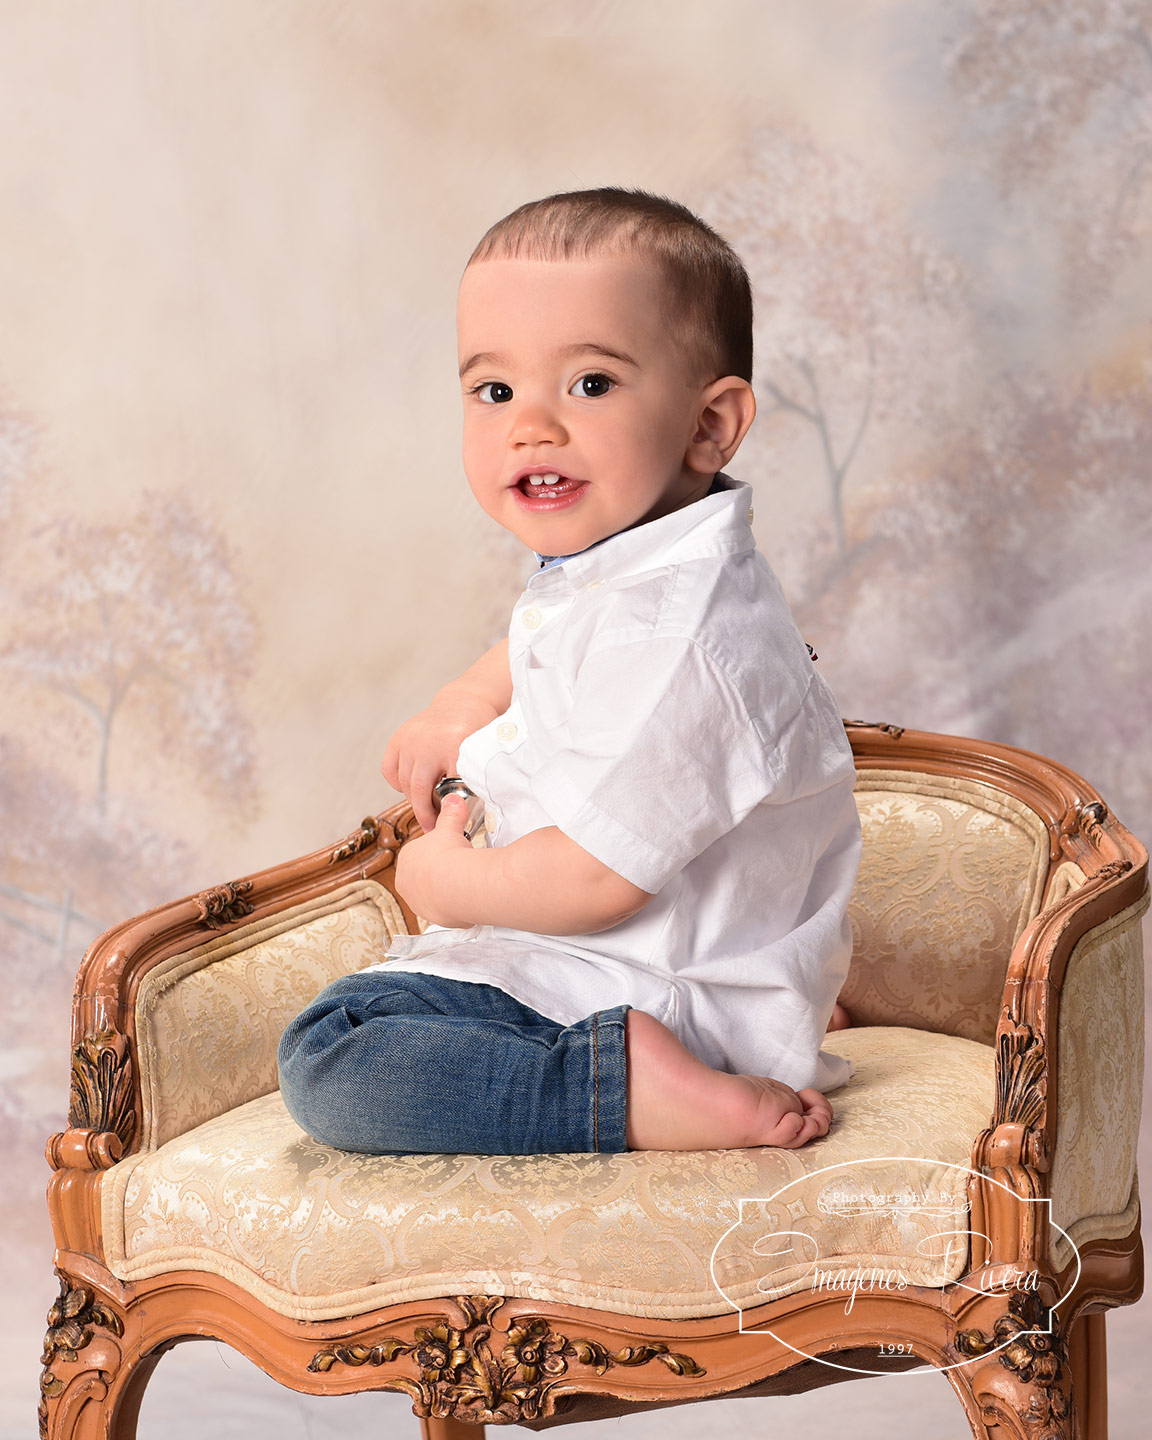 ♥ Endry's Family Photo Shoot | Imagenes Rivera Miami ♥